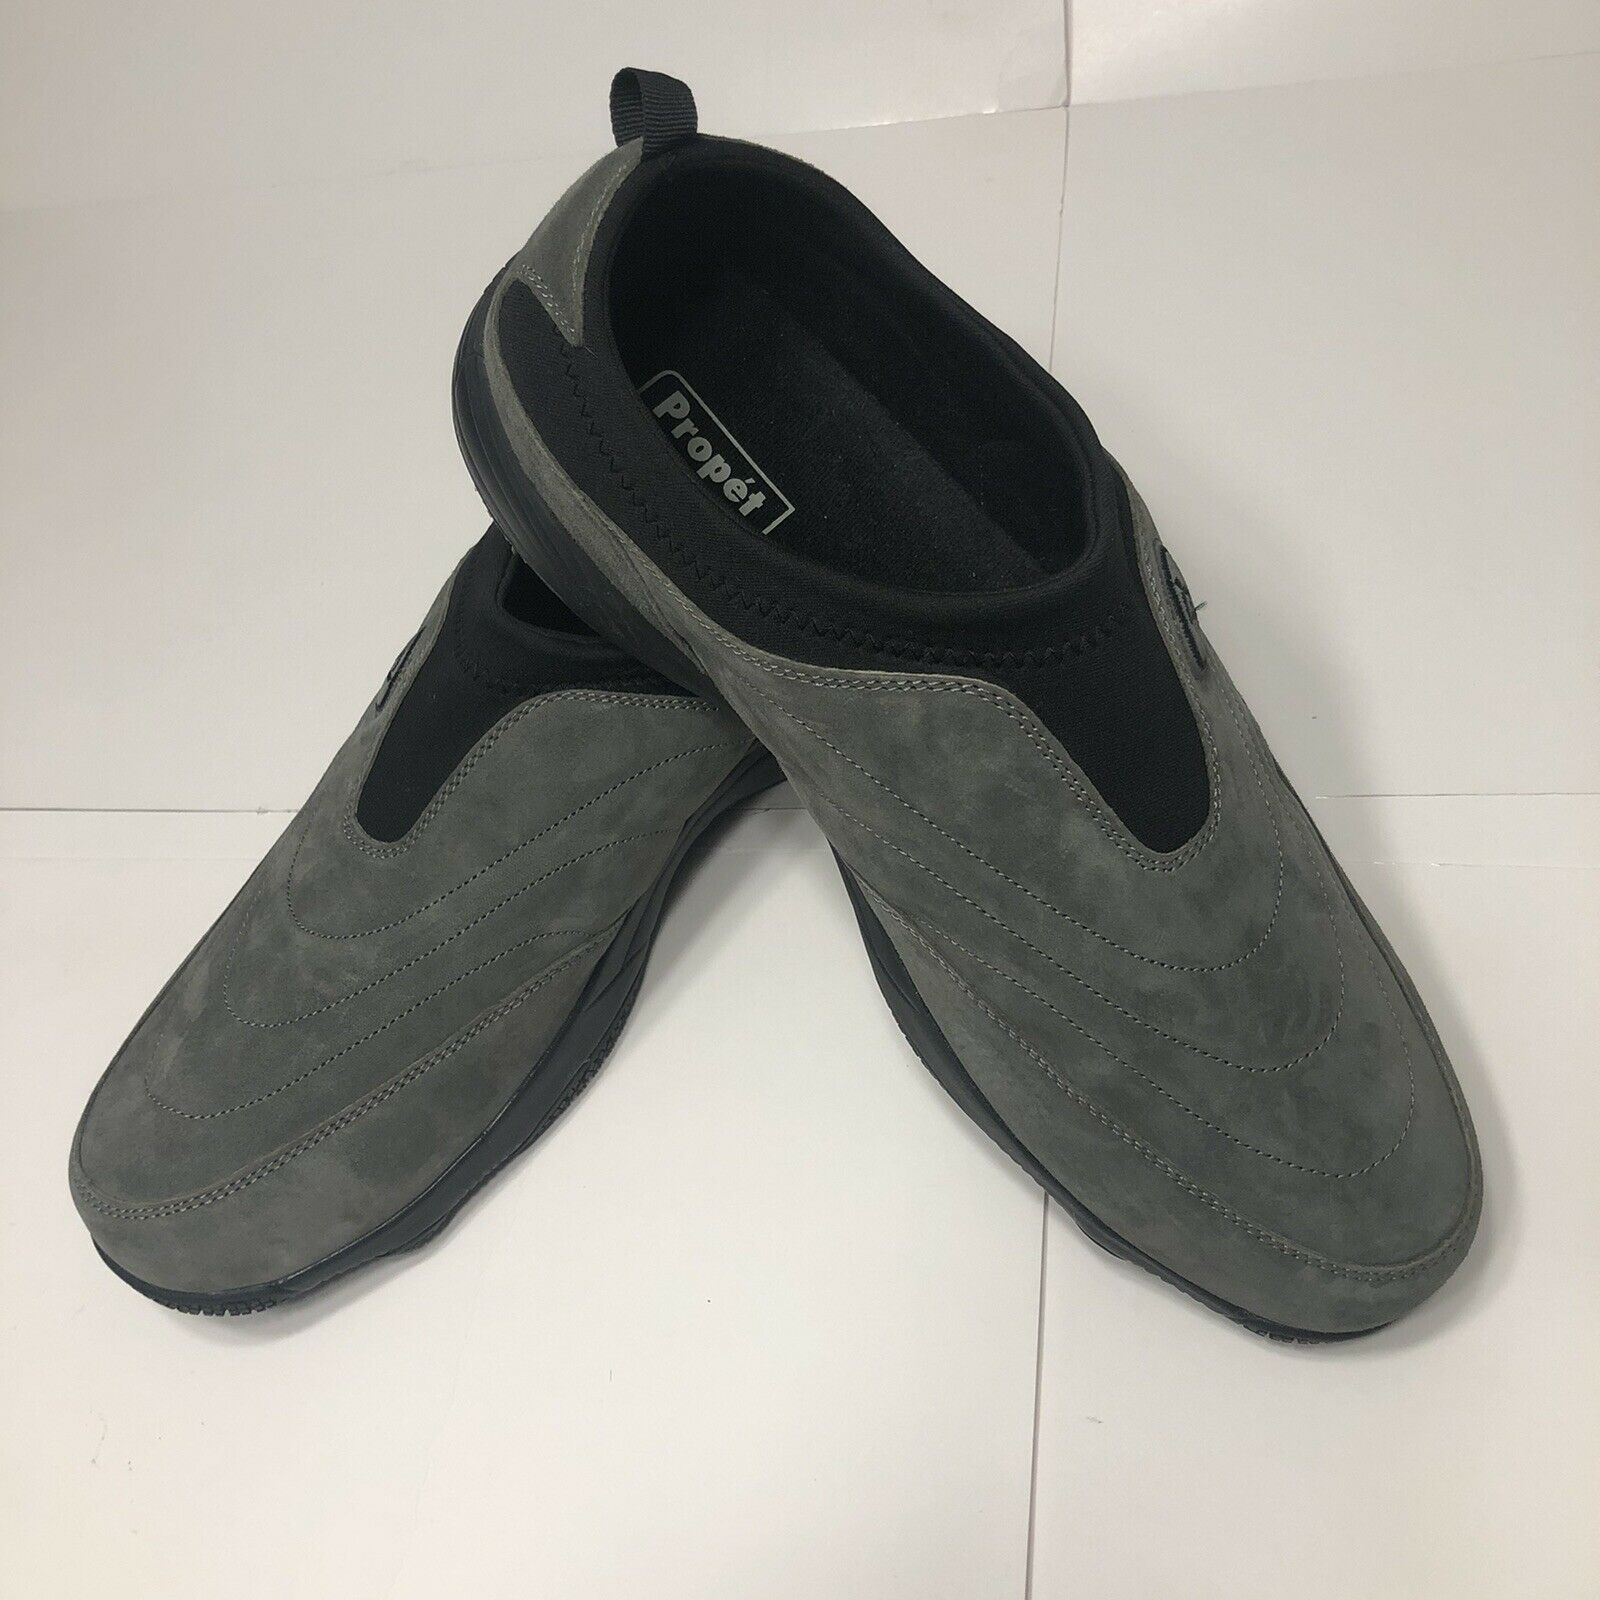 Propet Mens Wash N Wear Grey Suede Leather Slip On Shoes, Size 15, M3850